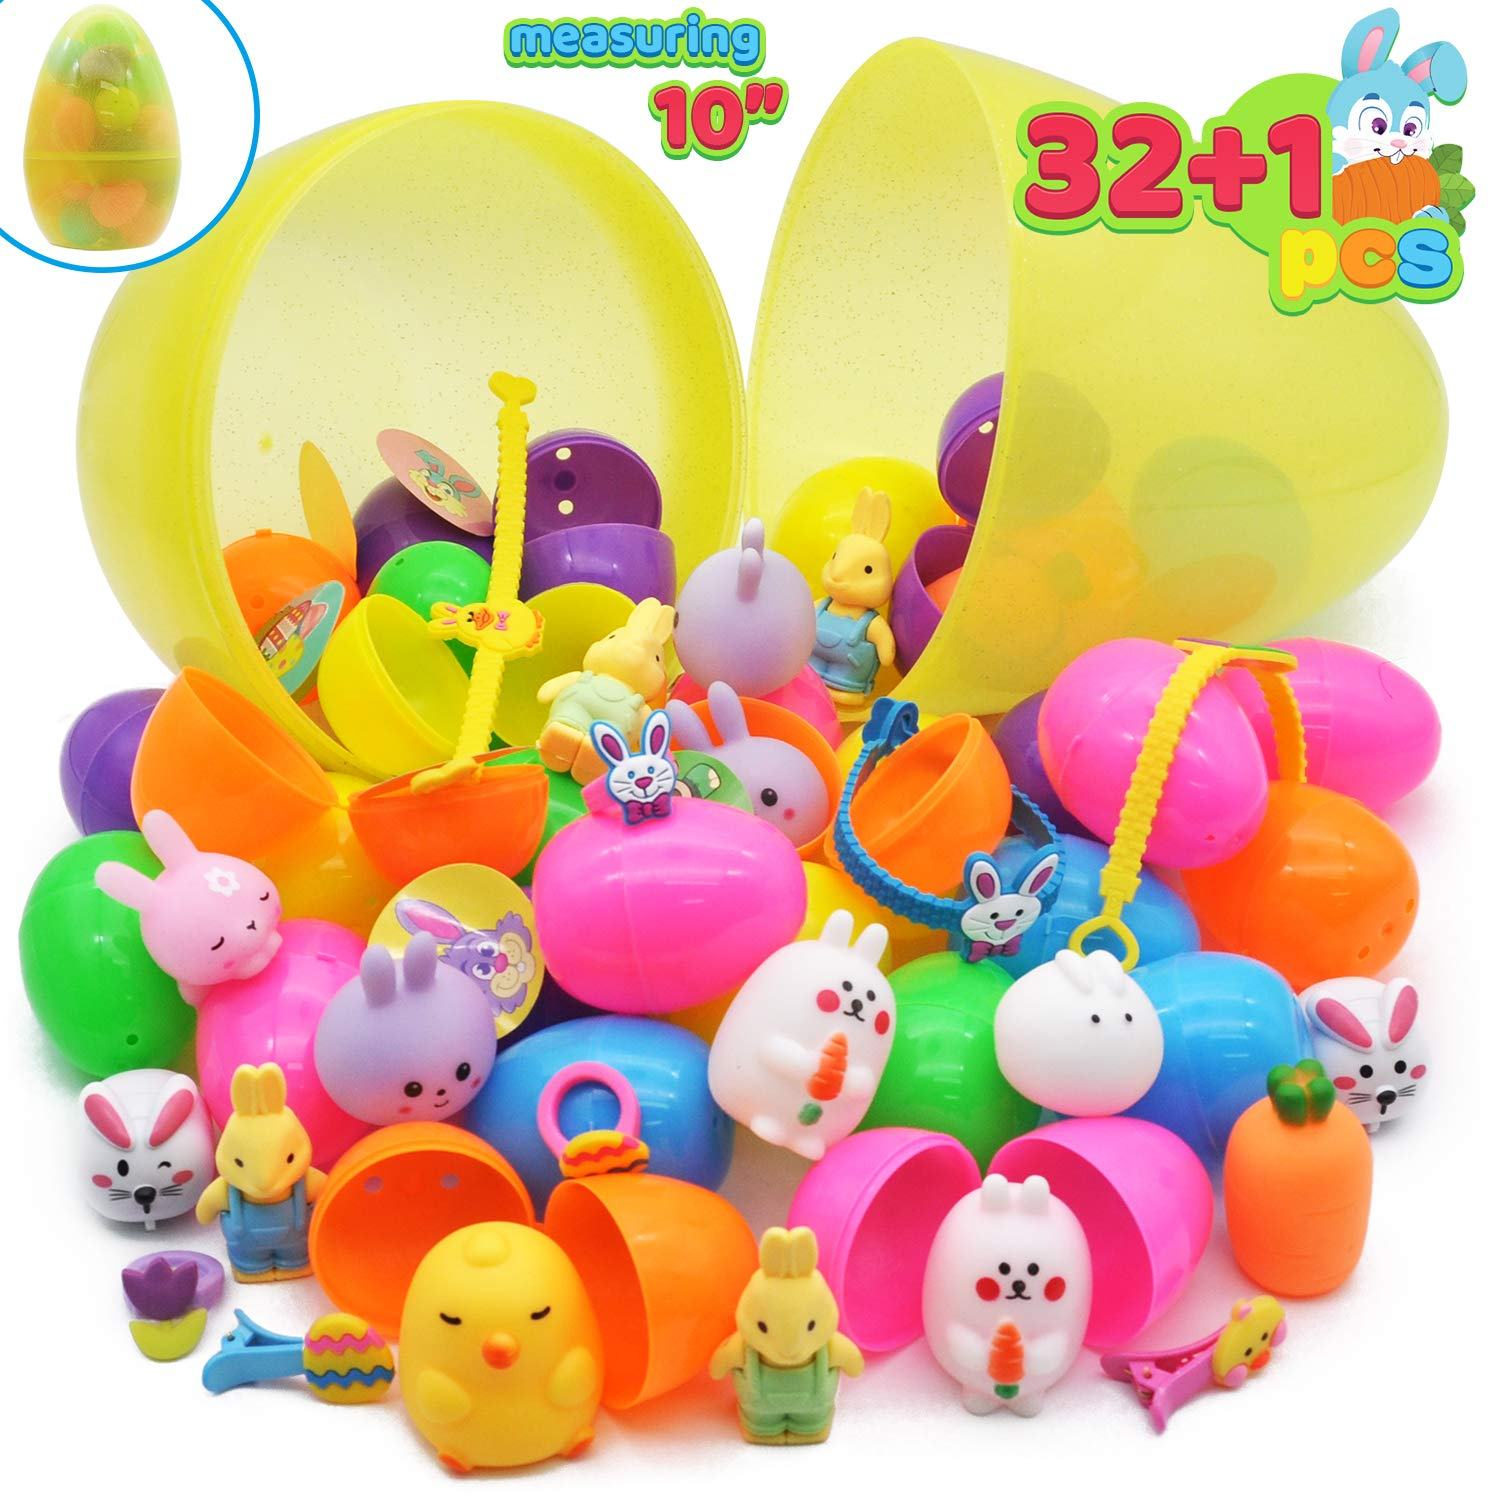 """32 Pcs Prefilled Easter Eggs plus one 10"""" Jumbo Plastic Glitter Surprise Egg with Toys for Kid, Learning Toys Education for Toddlers, Easter Egg Hunt, Easter Basket Stuffers, Party Favor Goodie"""